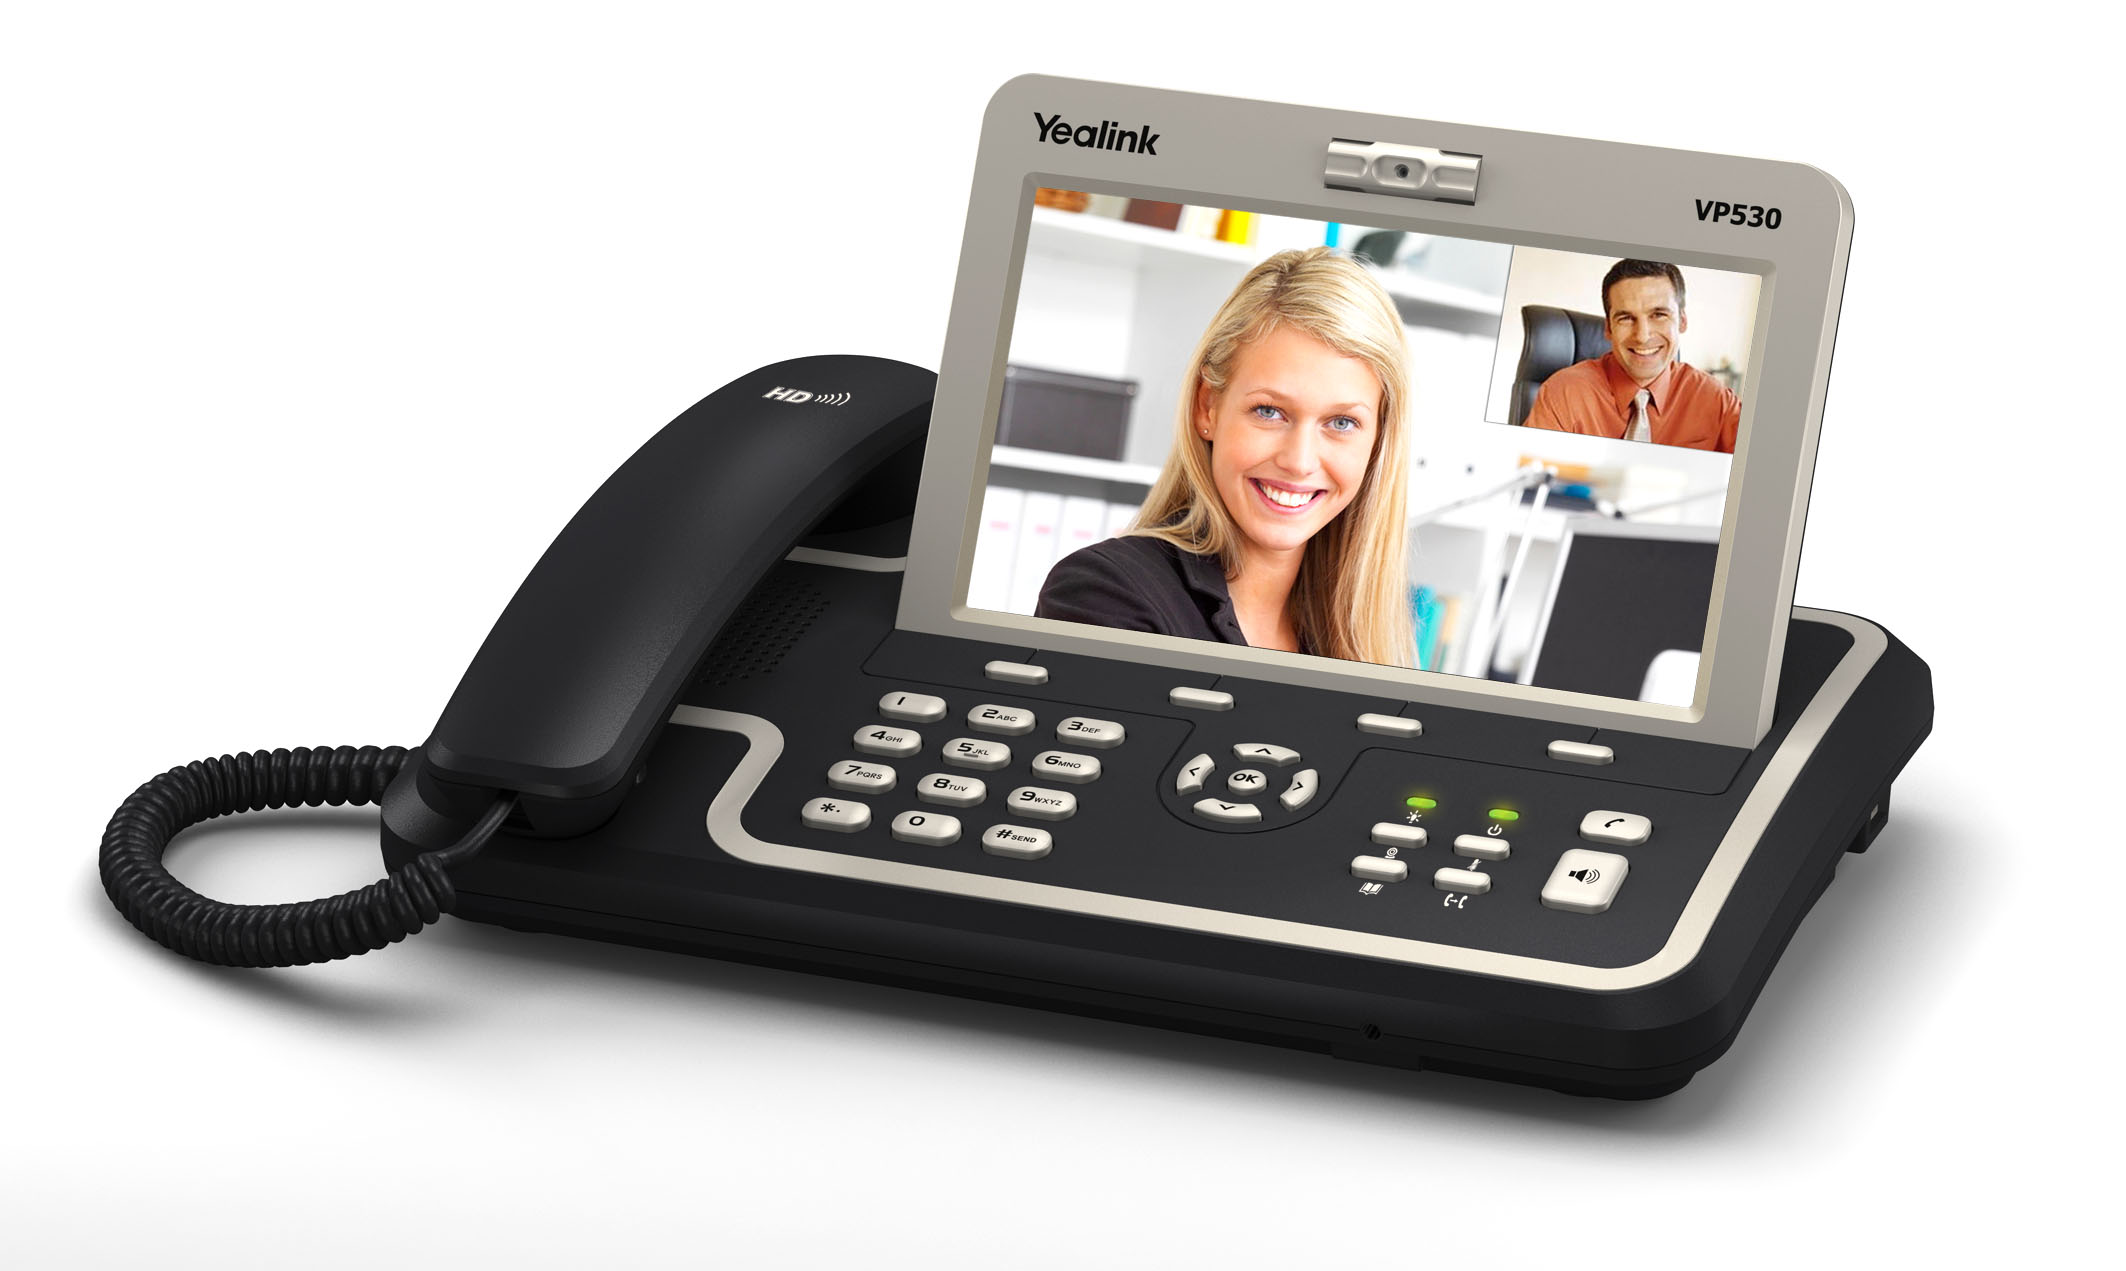 Image result for voip phone